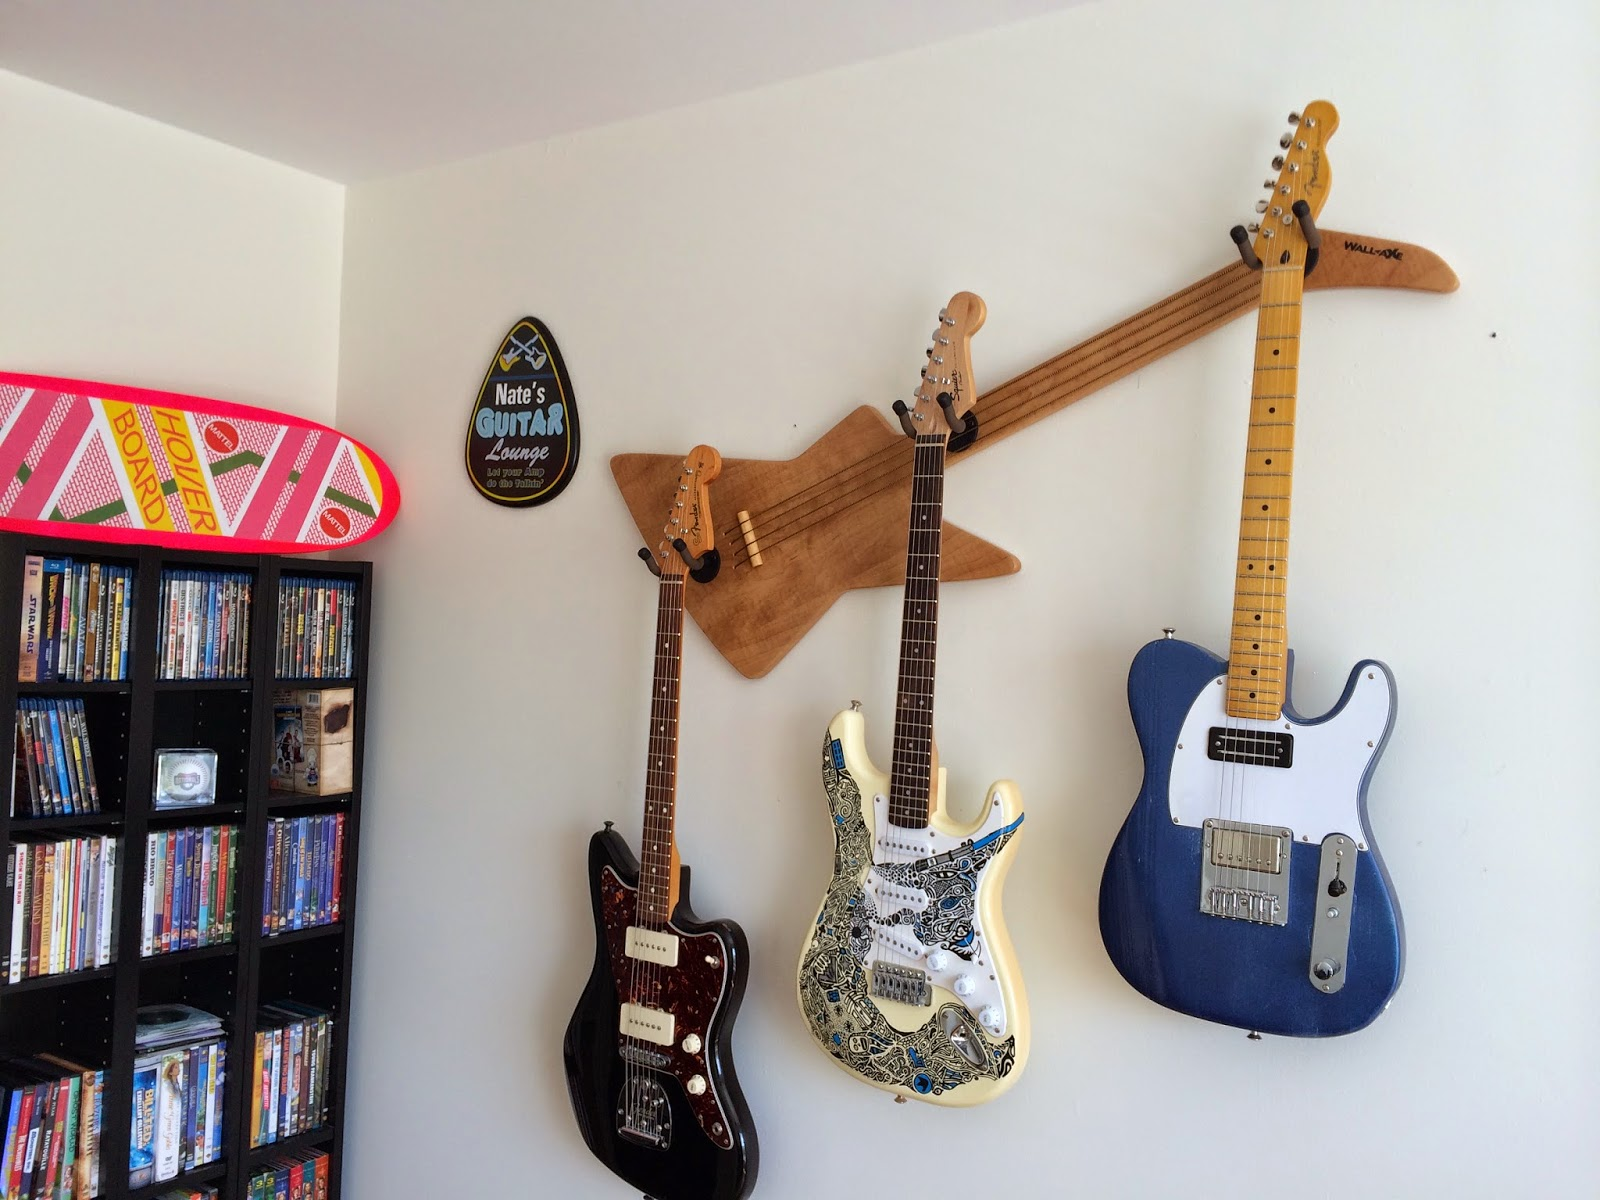 Wall-Axe's McFly LX-Candlelight is perfect for storing guitars in a tiny apartment.